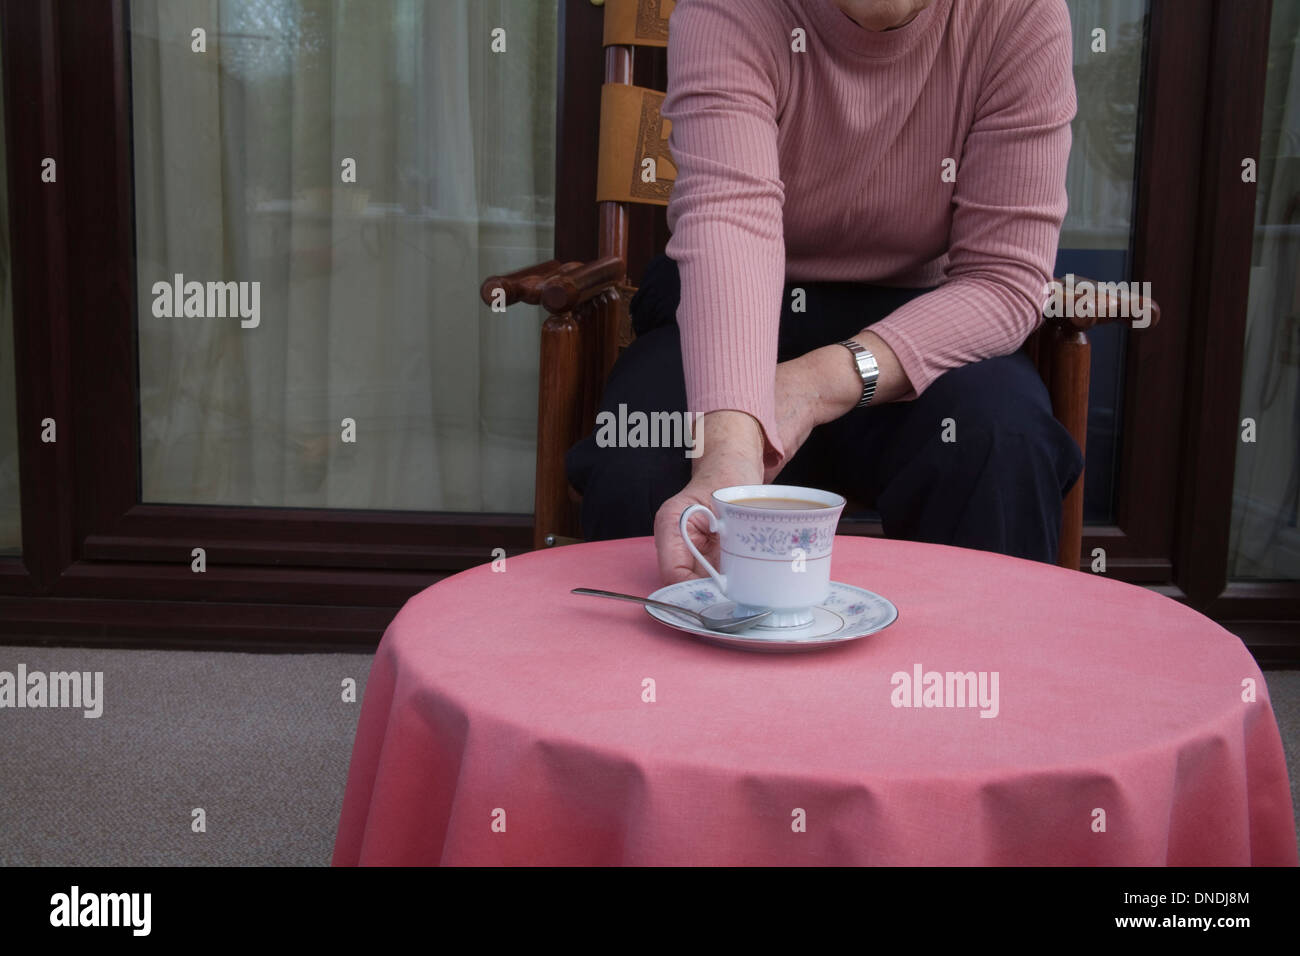 Elderly woman sitting in chair reaching out for cup of tea on table in front - Stock Image